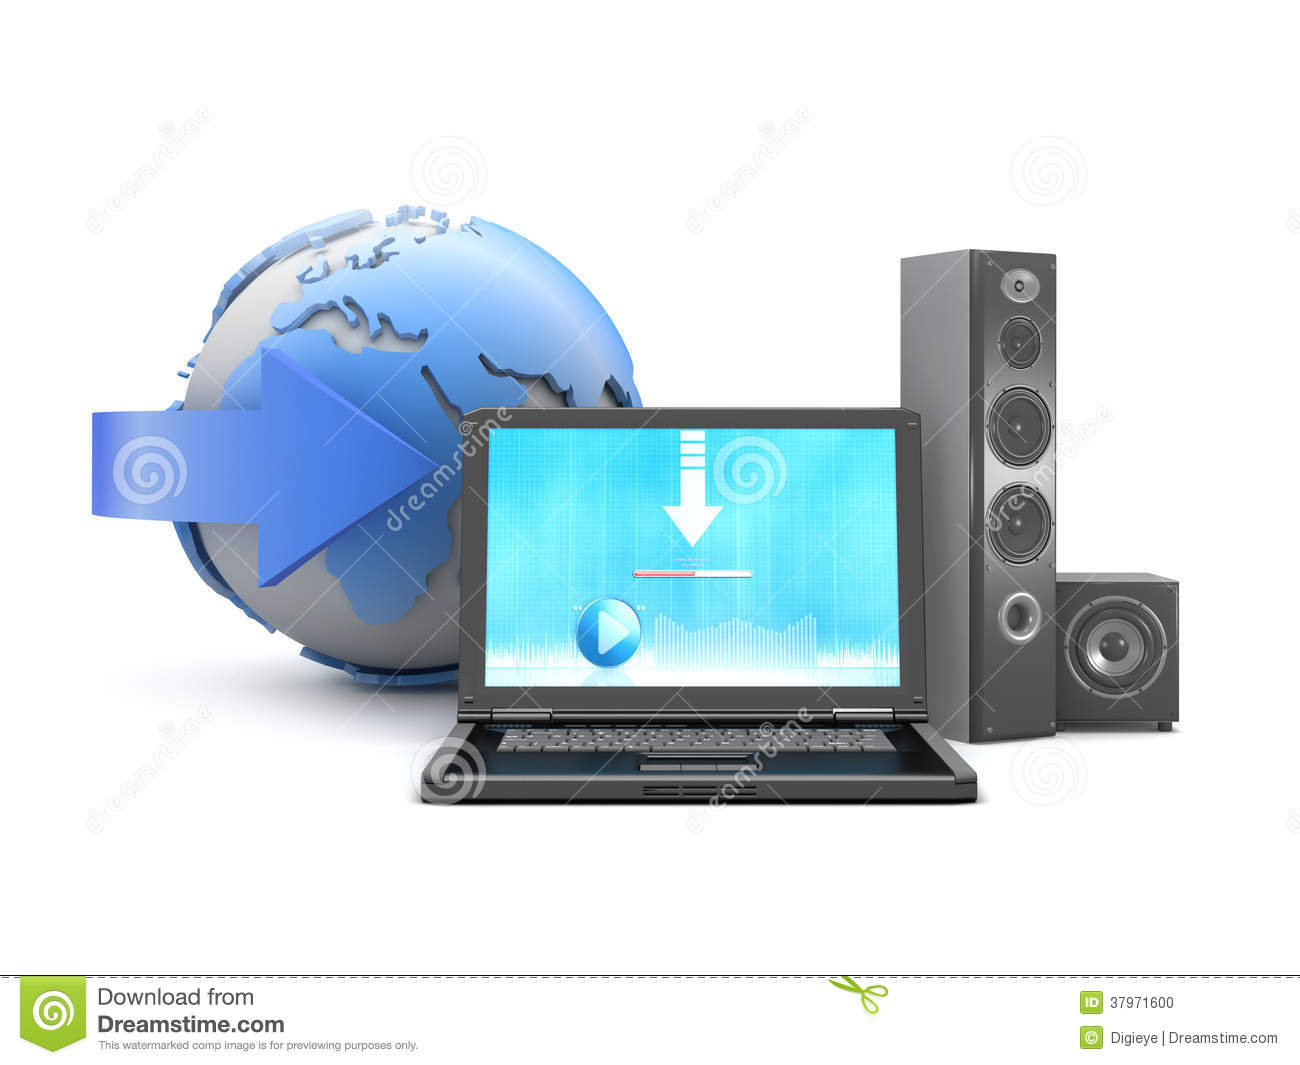 Download Music From Internet To Personal Computer Stock Illustration Illustration Of Download Modern 37971600